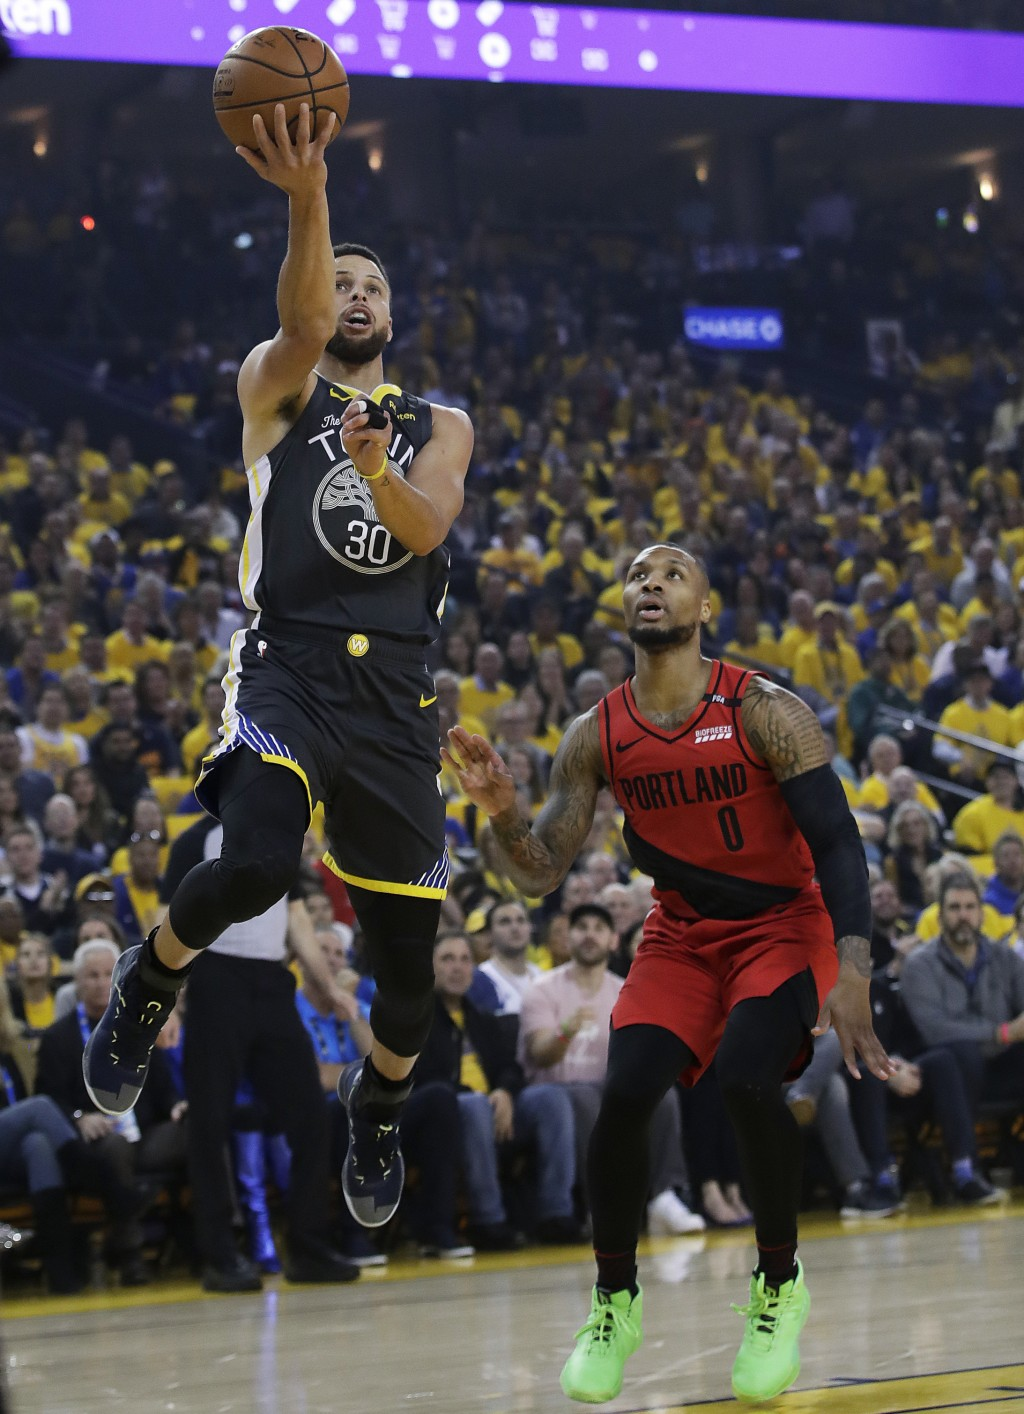 Golden State Warriors guard Stephen Curry (30) shoots next to Portland Trail Blazers guard Damian Lillard (0) during the first half of Game 2 of the N